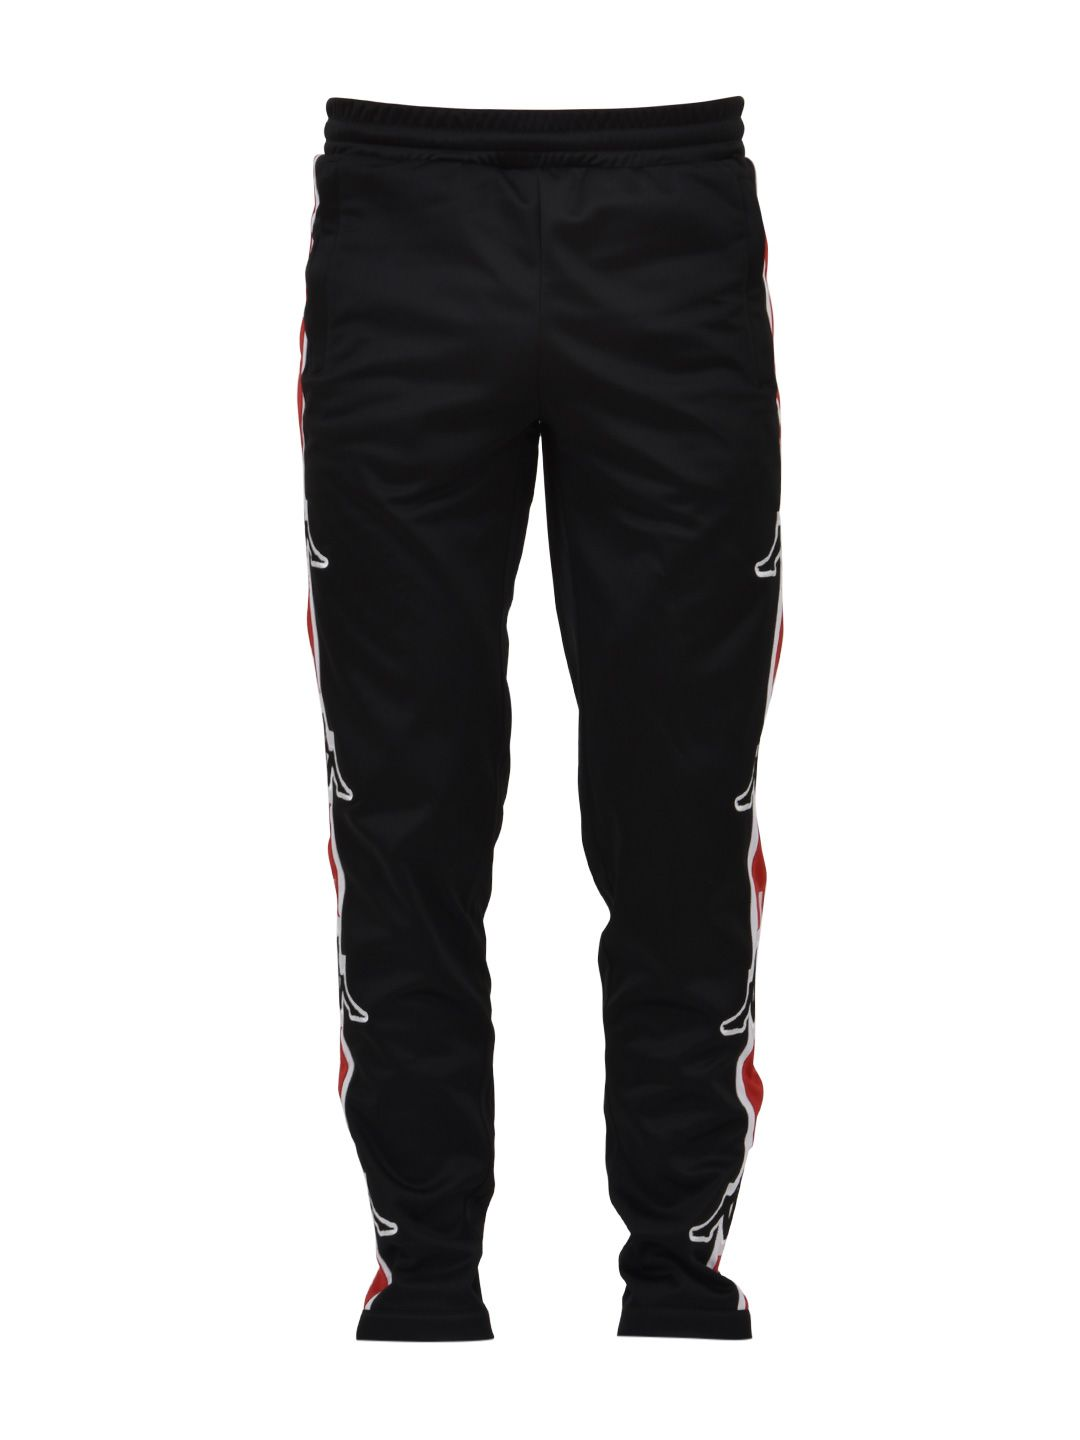 Marcelo Burlon Black Kappa Pants